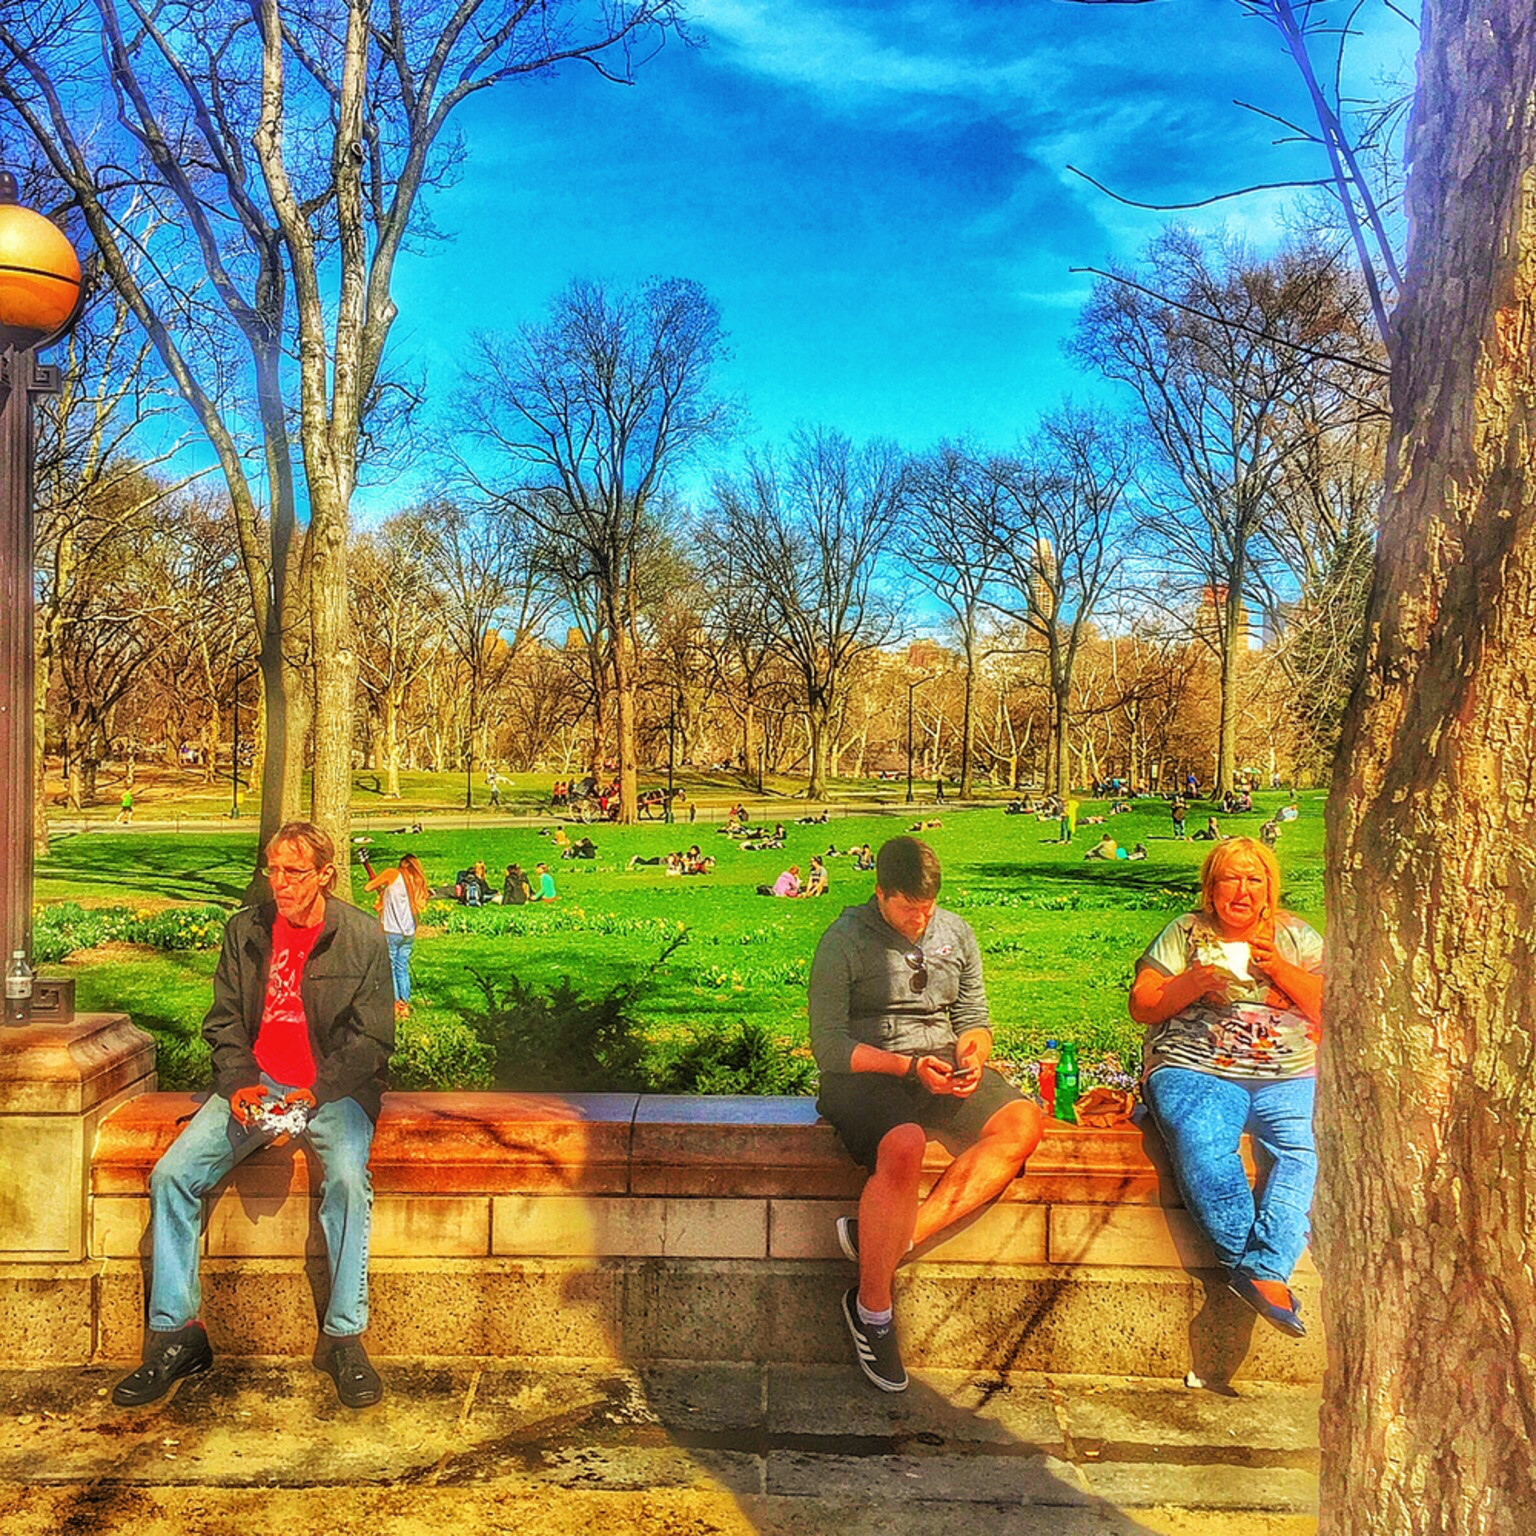 People in central park l39ccn